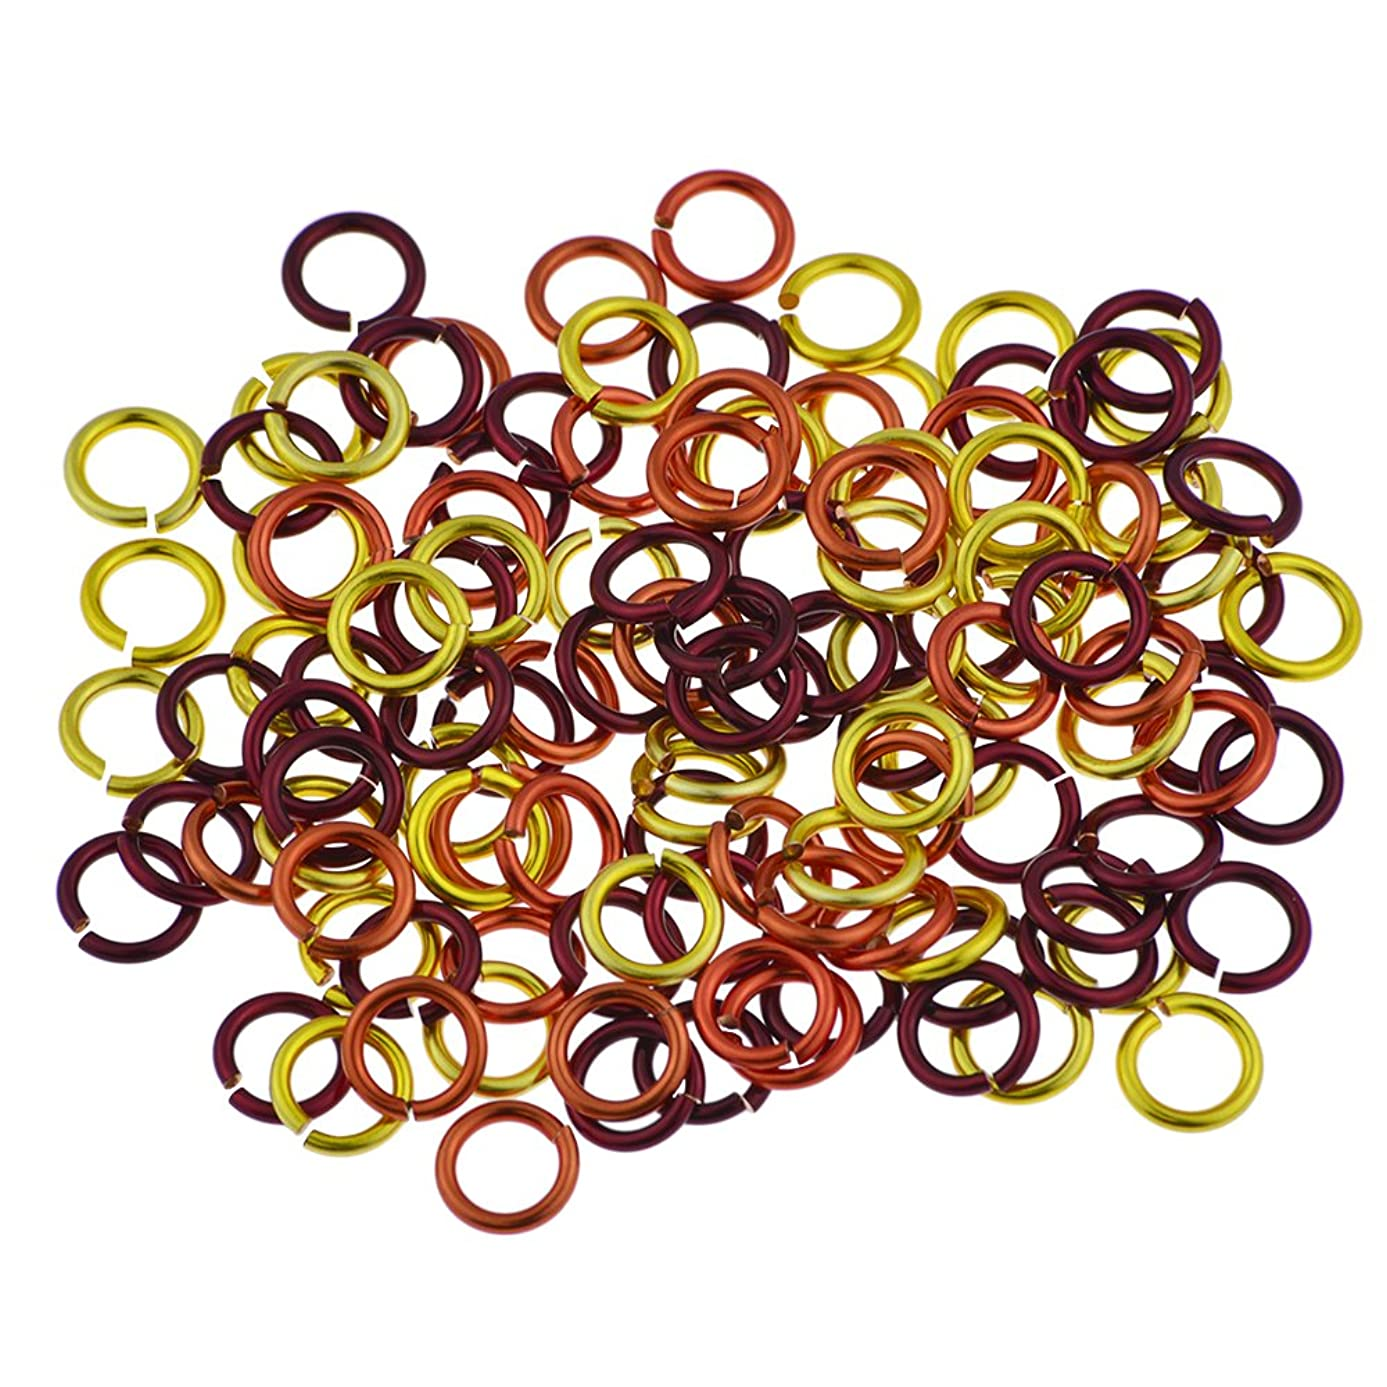 Weave Got Maille 18-Gauge 4mm Sonoran Sun Enameled Copper Jump Ring Mix - 1 Ounce